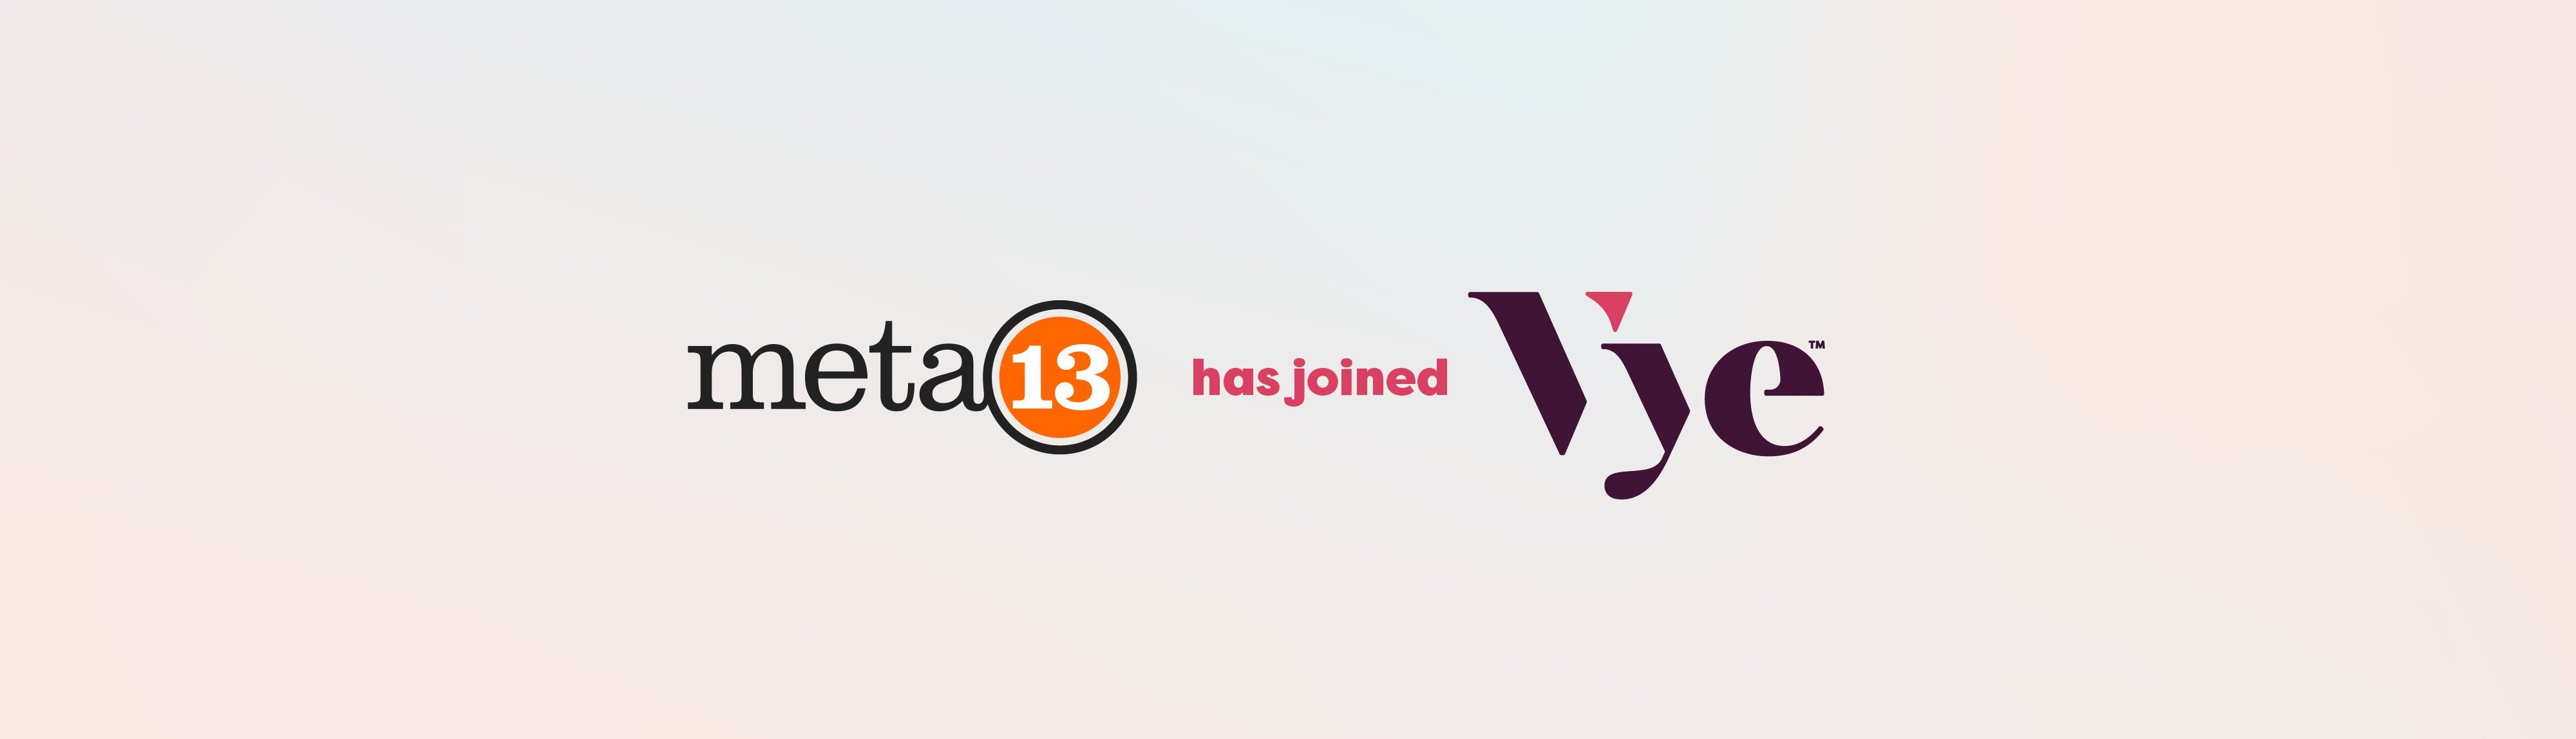 Two Leading Agencies — Vye and Meta 13 — Become Stronger Together